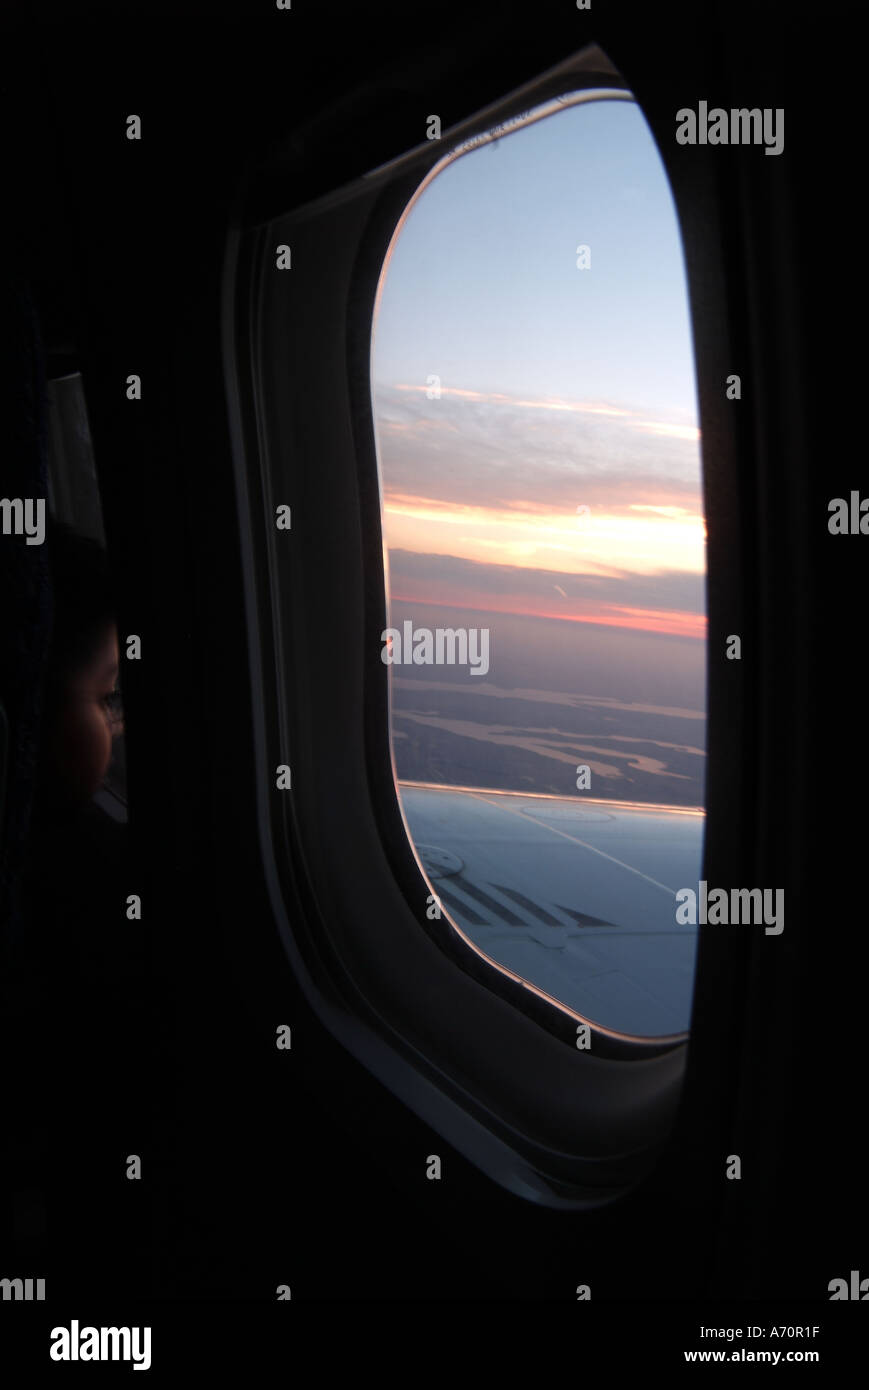 Sunset from a plane window - Stock Image